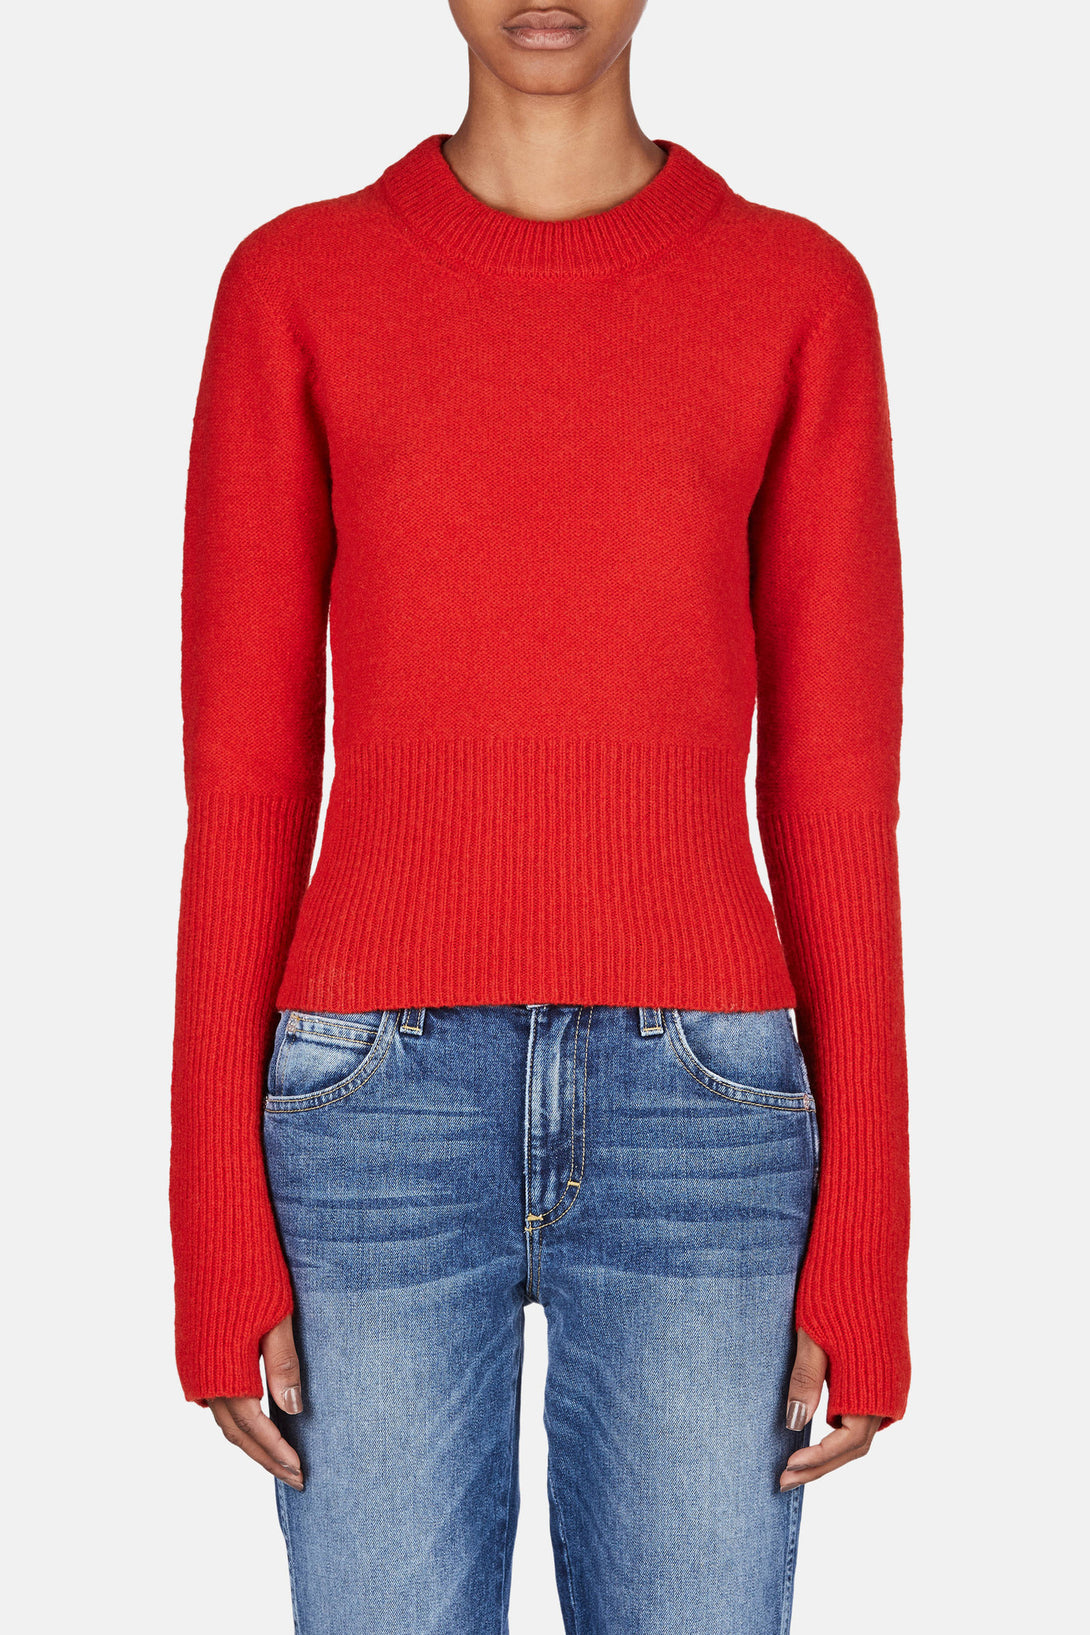 Short Sweater - Scarlet